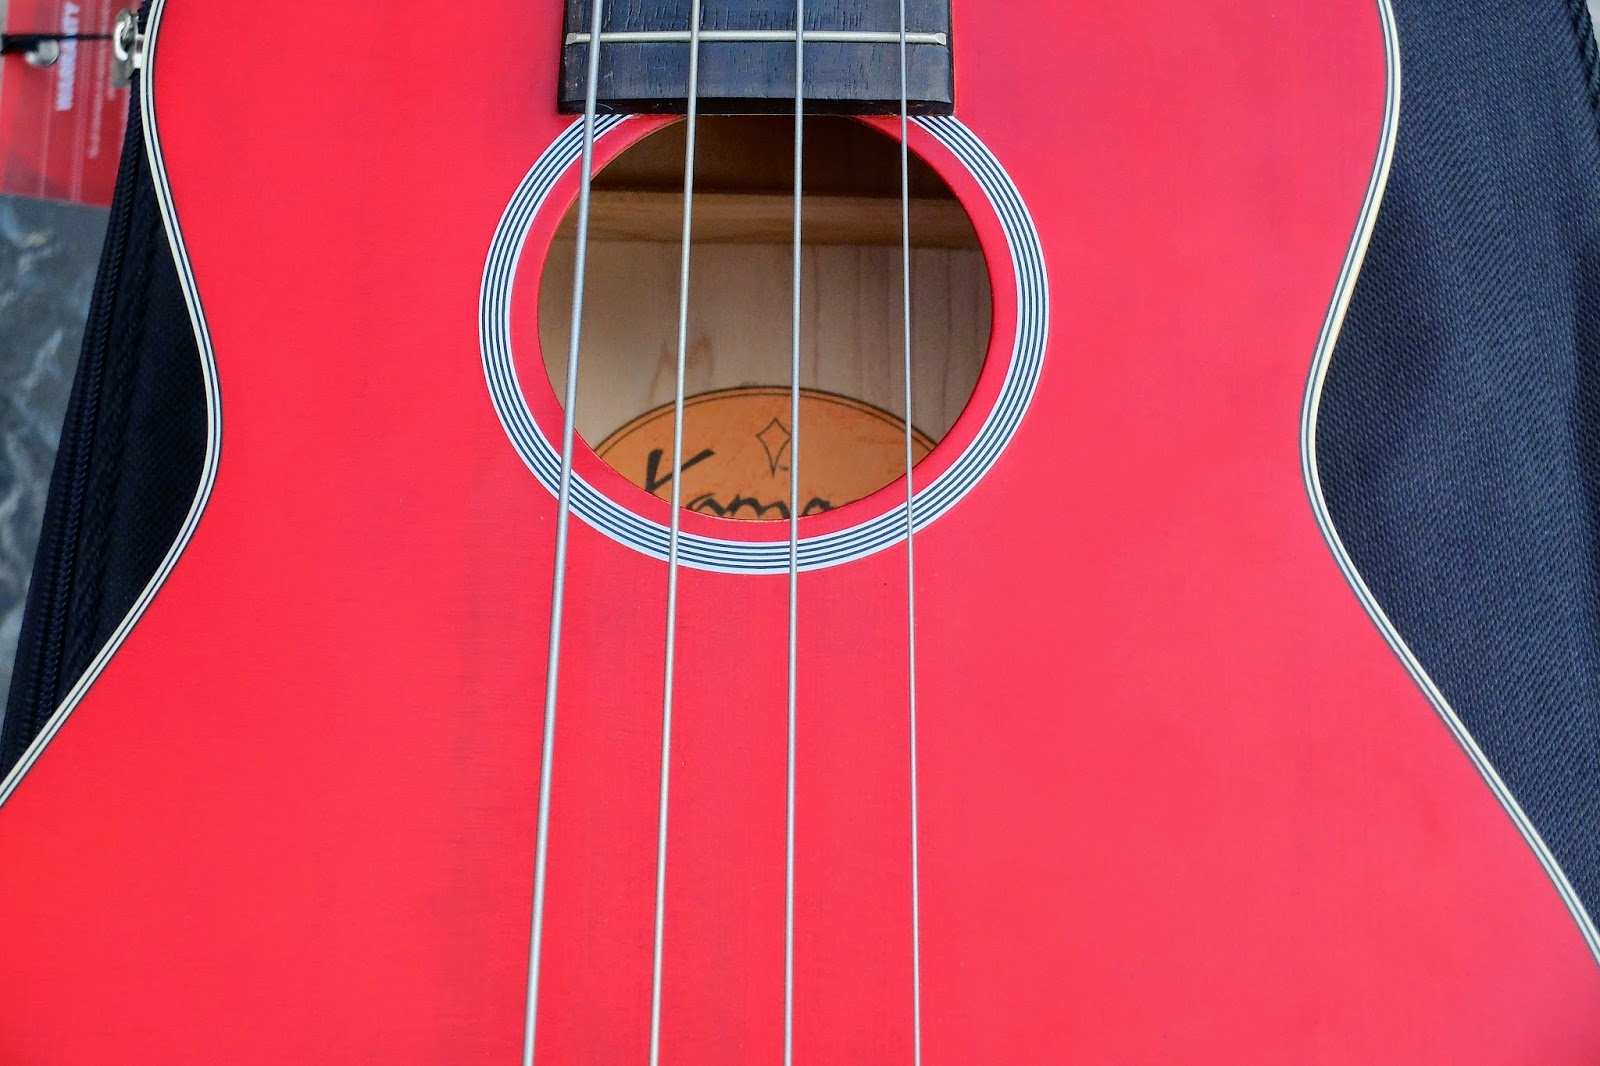 Kamoa E3E Ukulele Bass sound hole